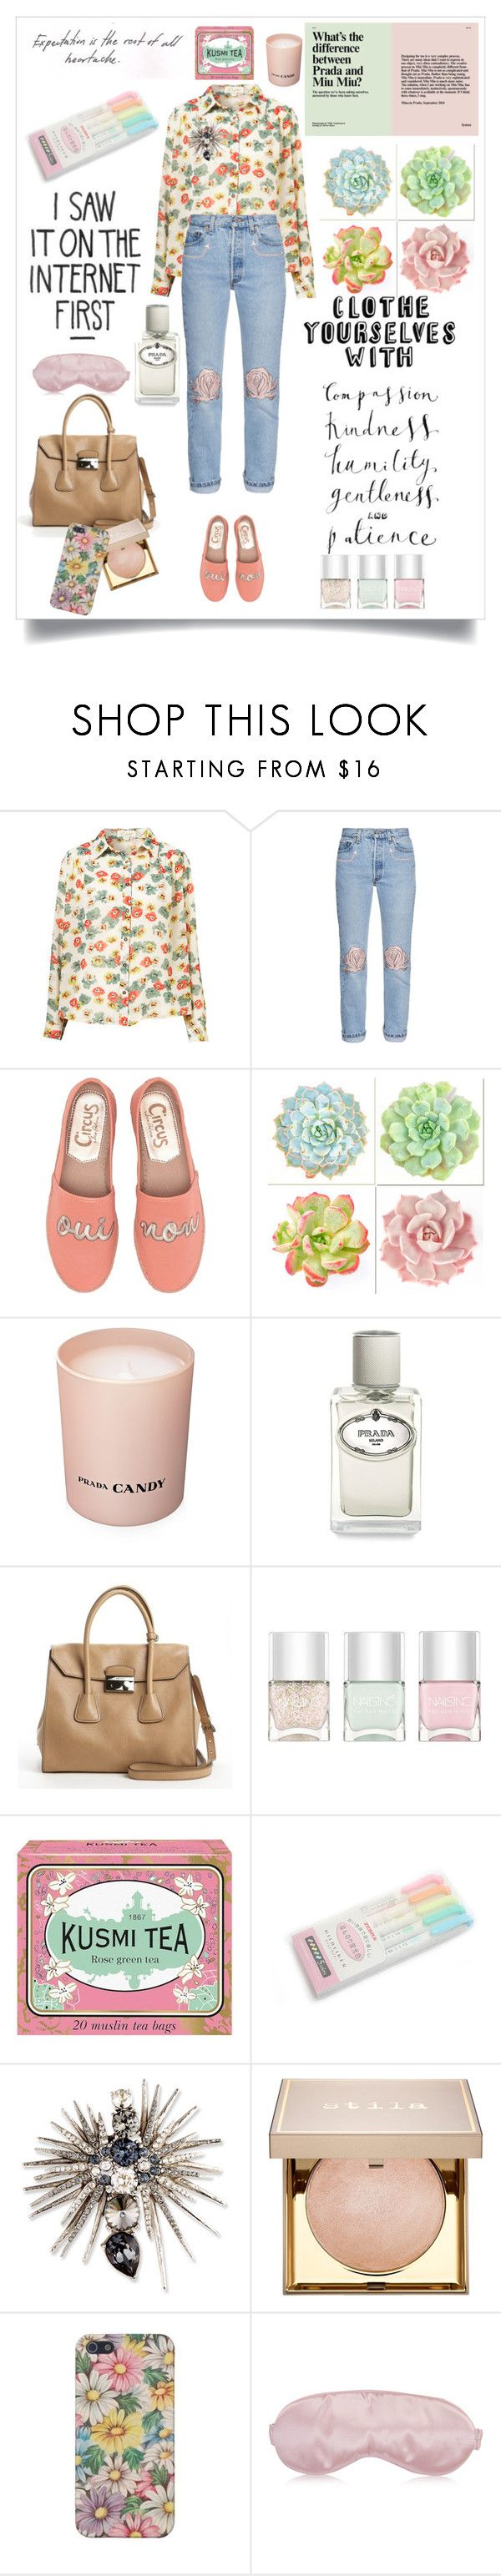 """Nana, is that you?"" by lseed87 ❤ liked on Polyvore featuring Bliss and Mischief, Circus by Sam Edelman, WALL, Prada, Nails Inc., Kusmi Tea, Oscar de la Renta, Stila, floral and Flowers"